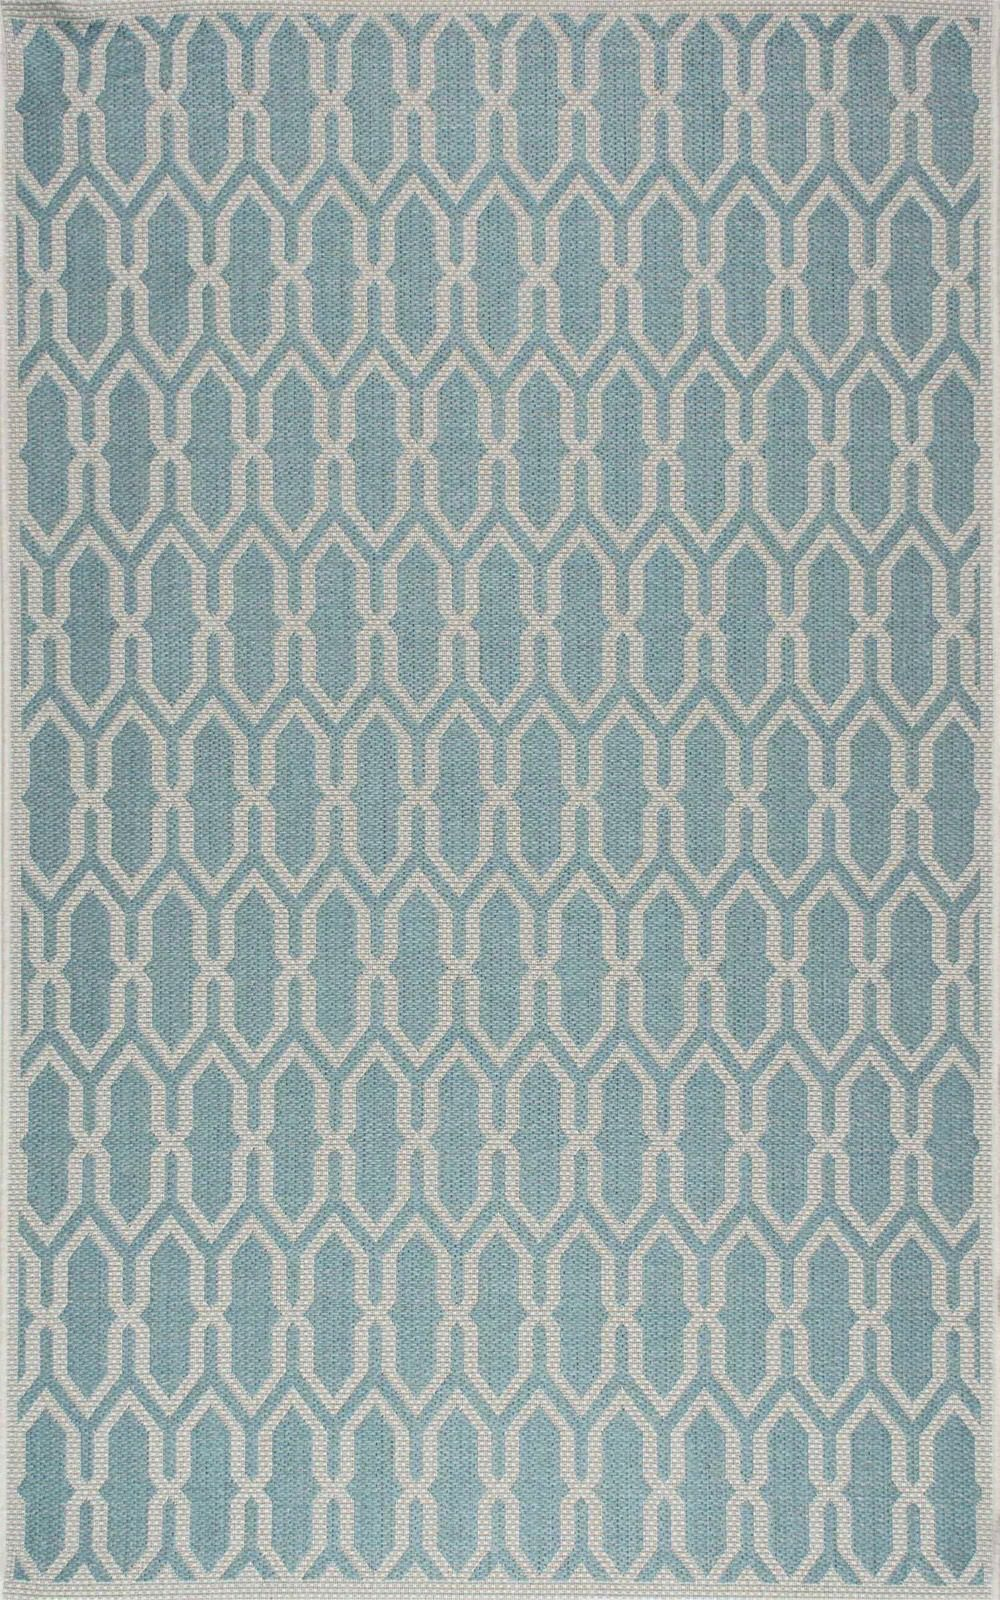 nuloom coralie indoor/outdoor area rug collection